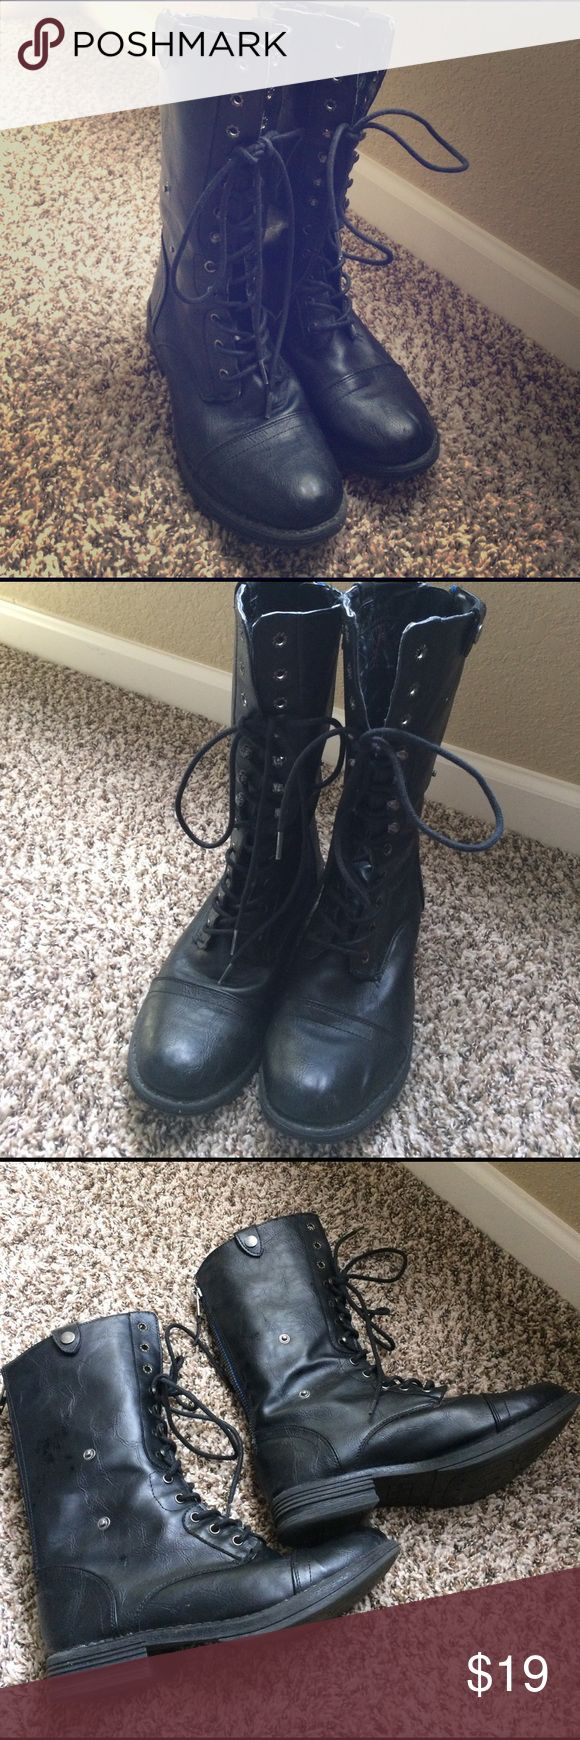 """8.5 Madden Girl Zorrba Versitile Lace Up Boot Used 8.5 Madden Girl Zorrba Versitile Lace Up Black Boot. Very clean still have a lot of life. Wore them a handful of times. Synthetic upper, Lace up, back zipper, optional cuff w/ side snap fasteners, approx 9"""" shaft height uncuffed, tribal fabric lining, synthetic sole. Blue back zipper. Super chic! Madden Girl Shoes Lace Up Boots"""